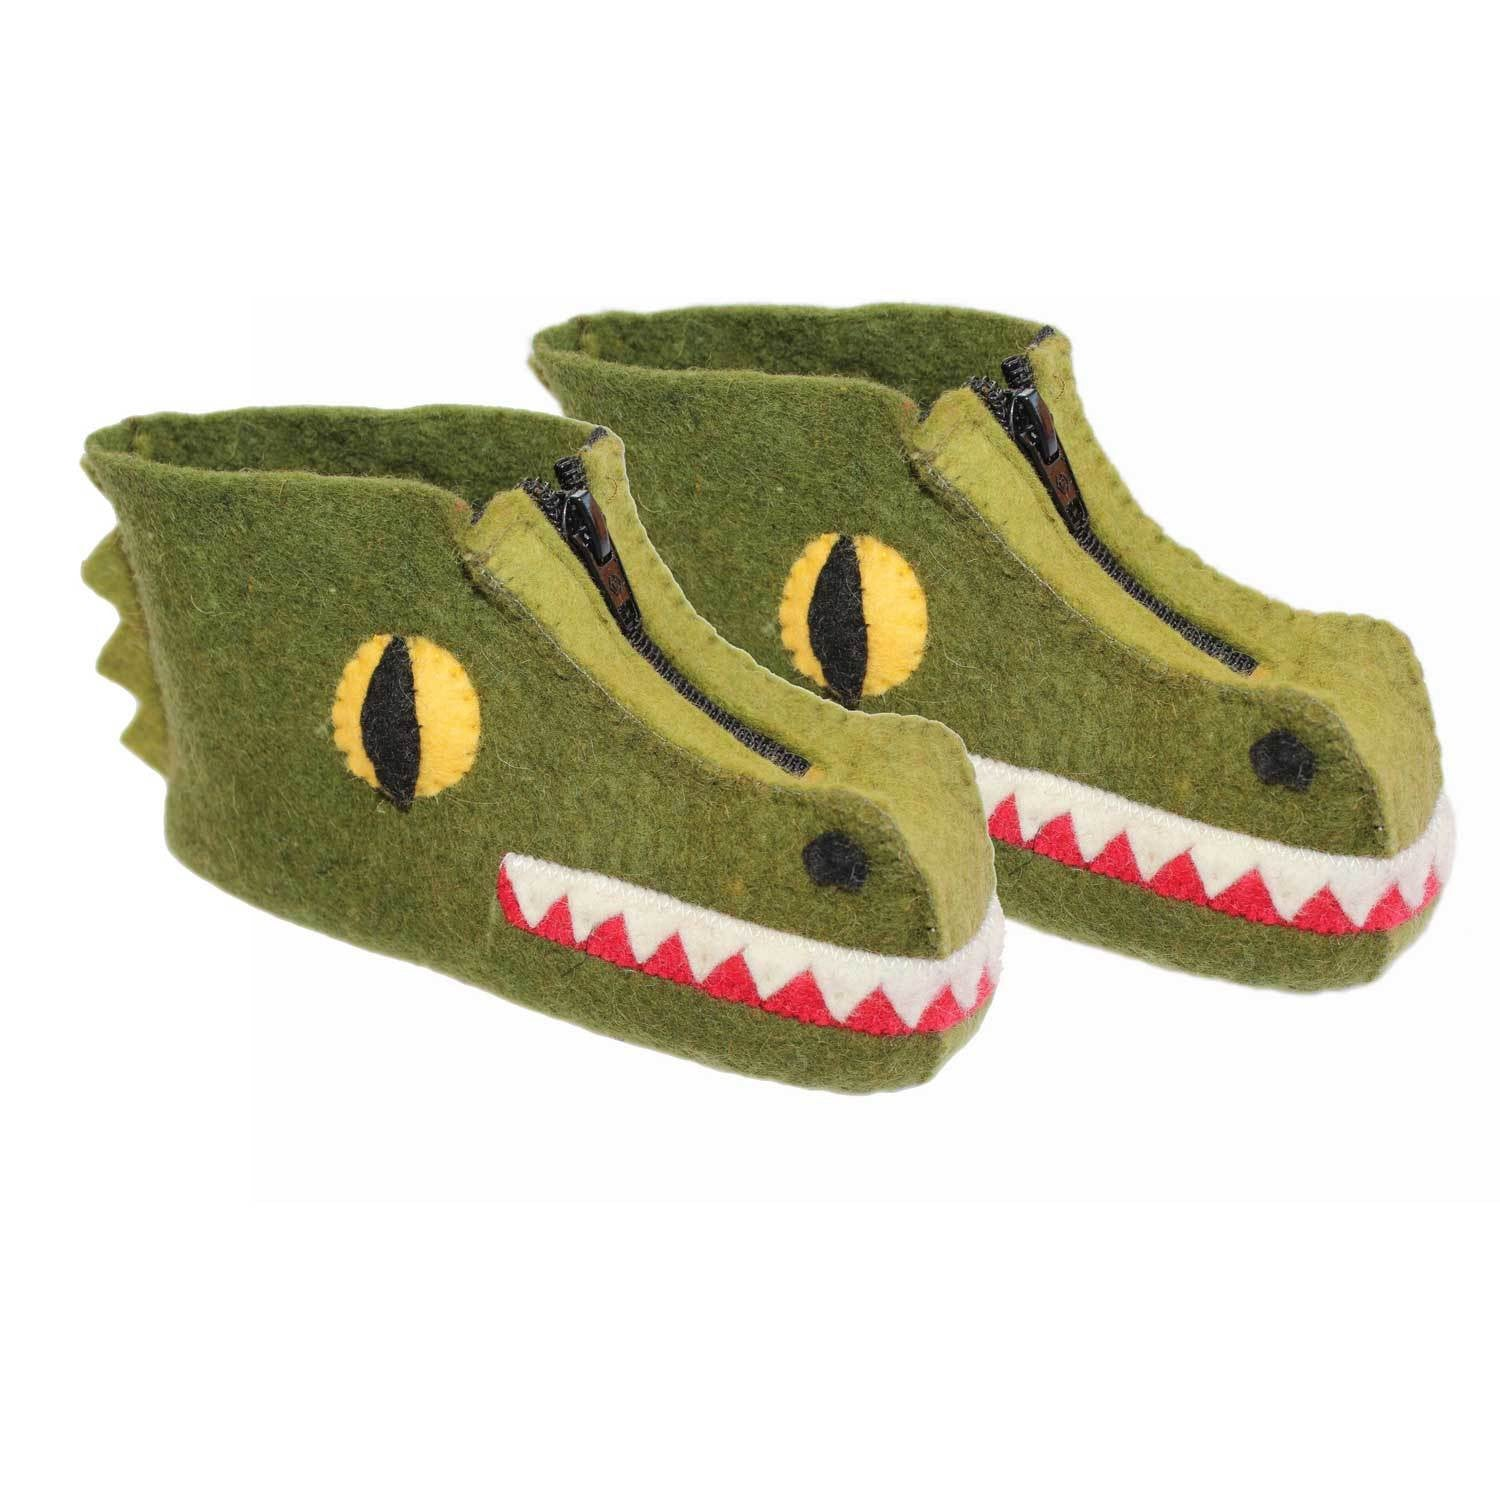 Alligator Kid Zooties Age 4-5 - Silk Road Bazaar